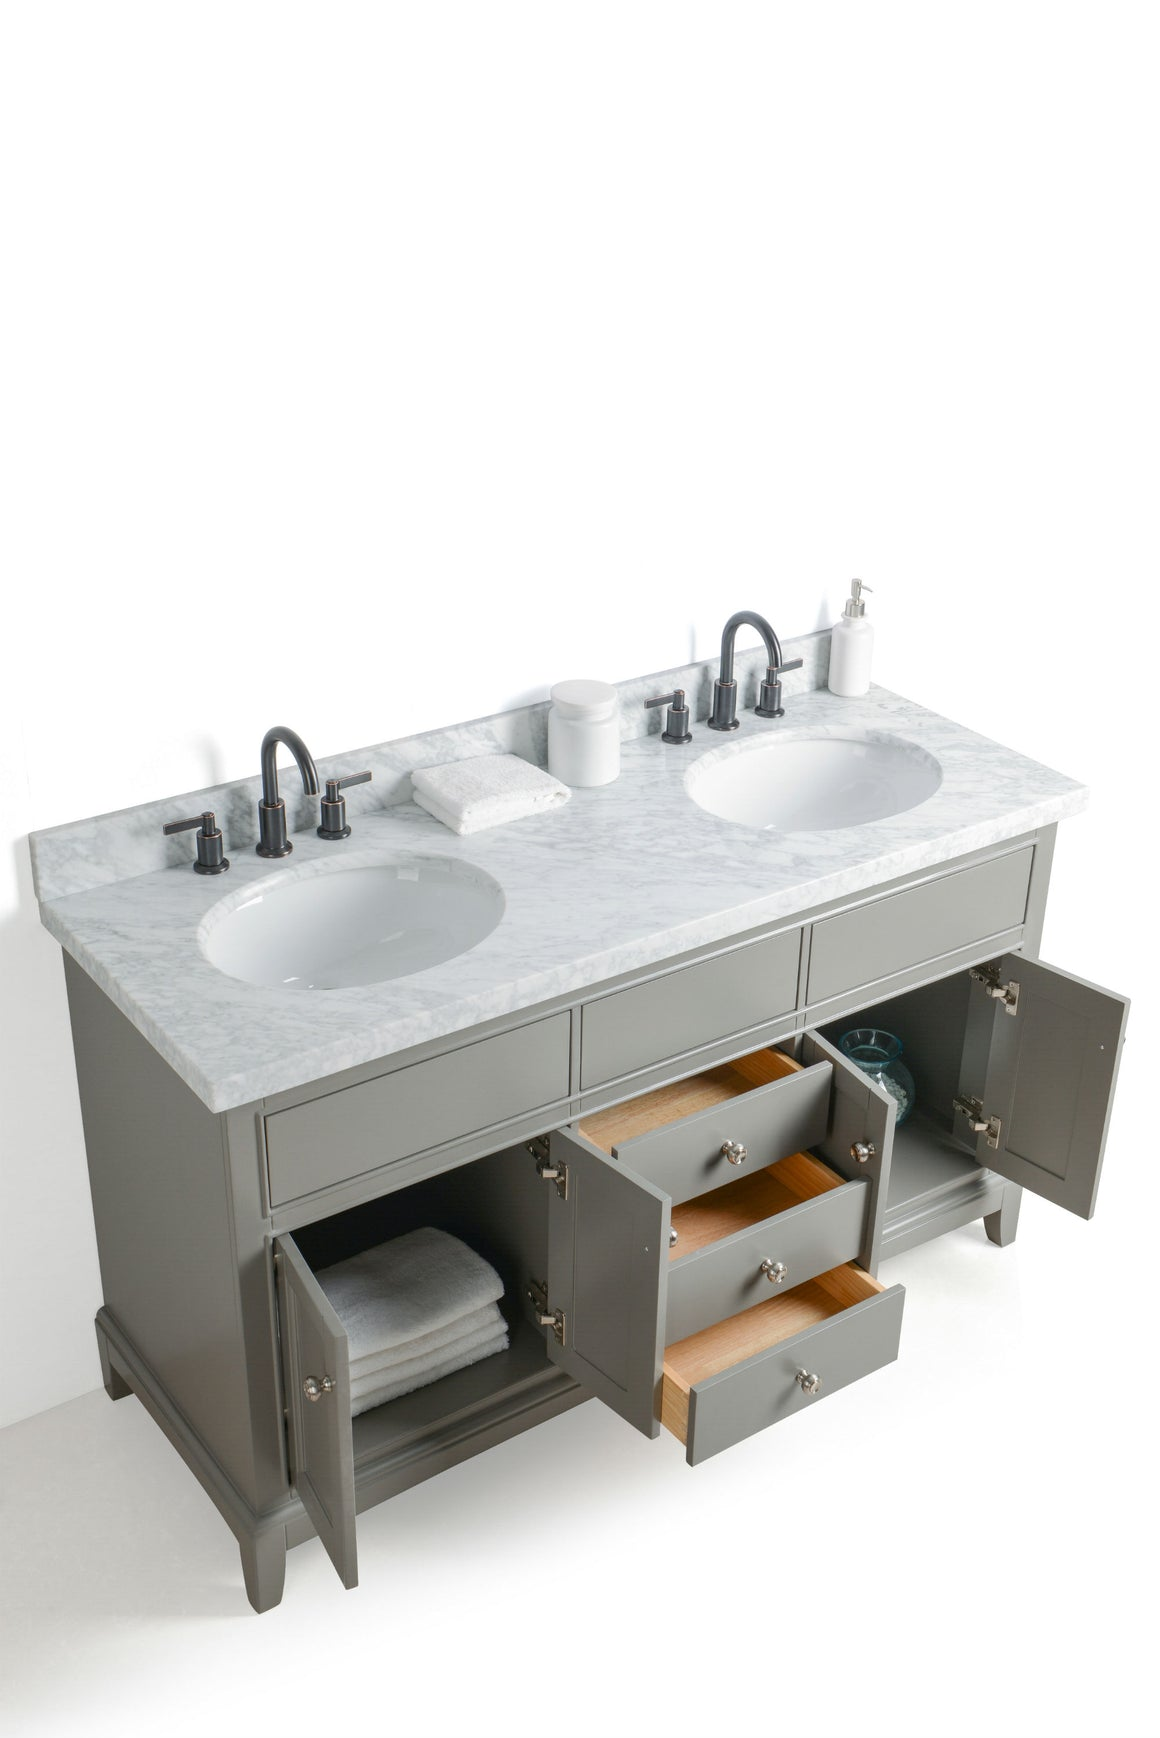 "60"" Grey Dual Sink Bathroom Vanity with Mirrors, Marble Top and Faucets"